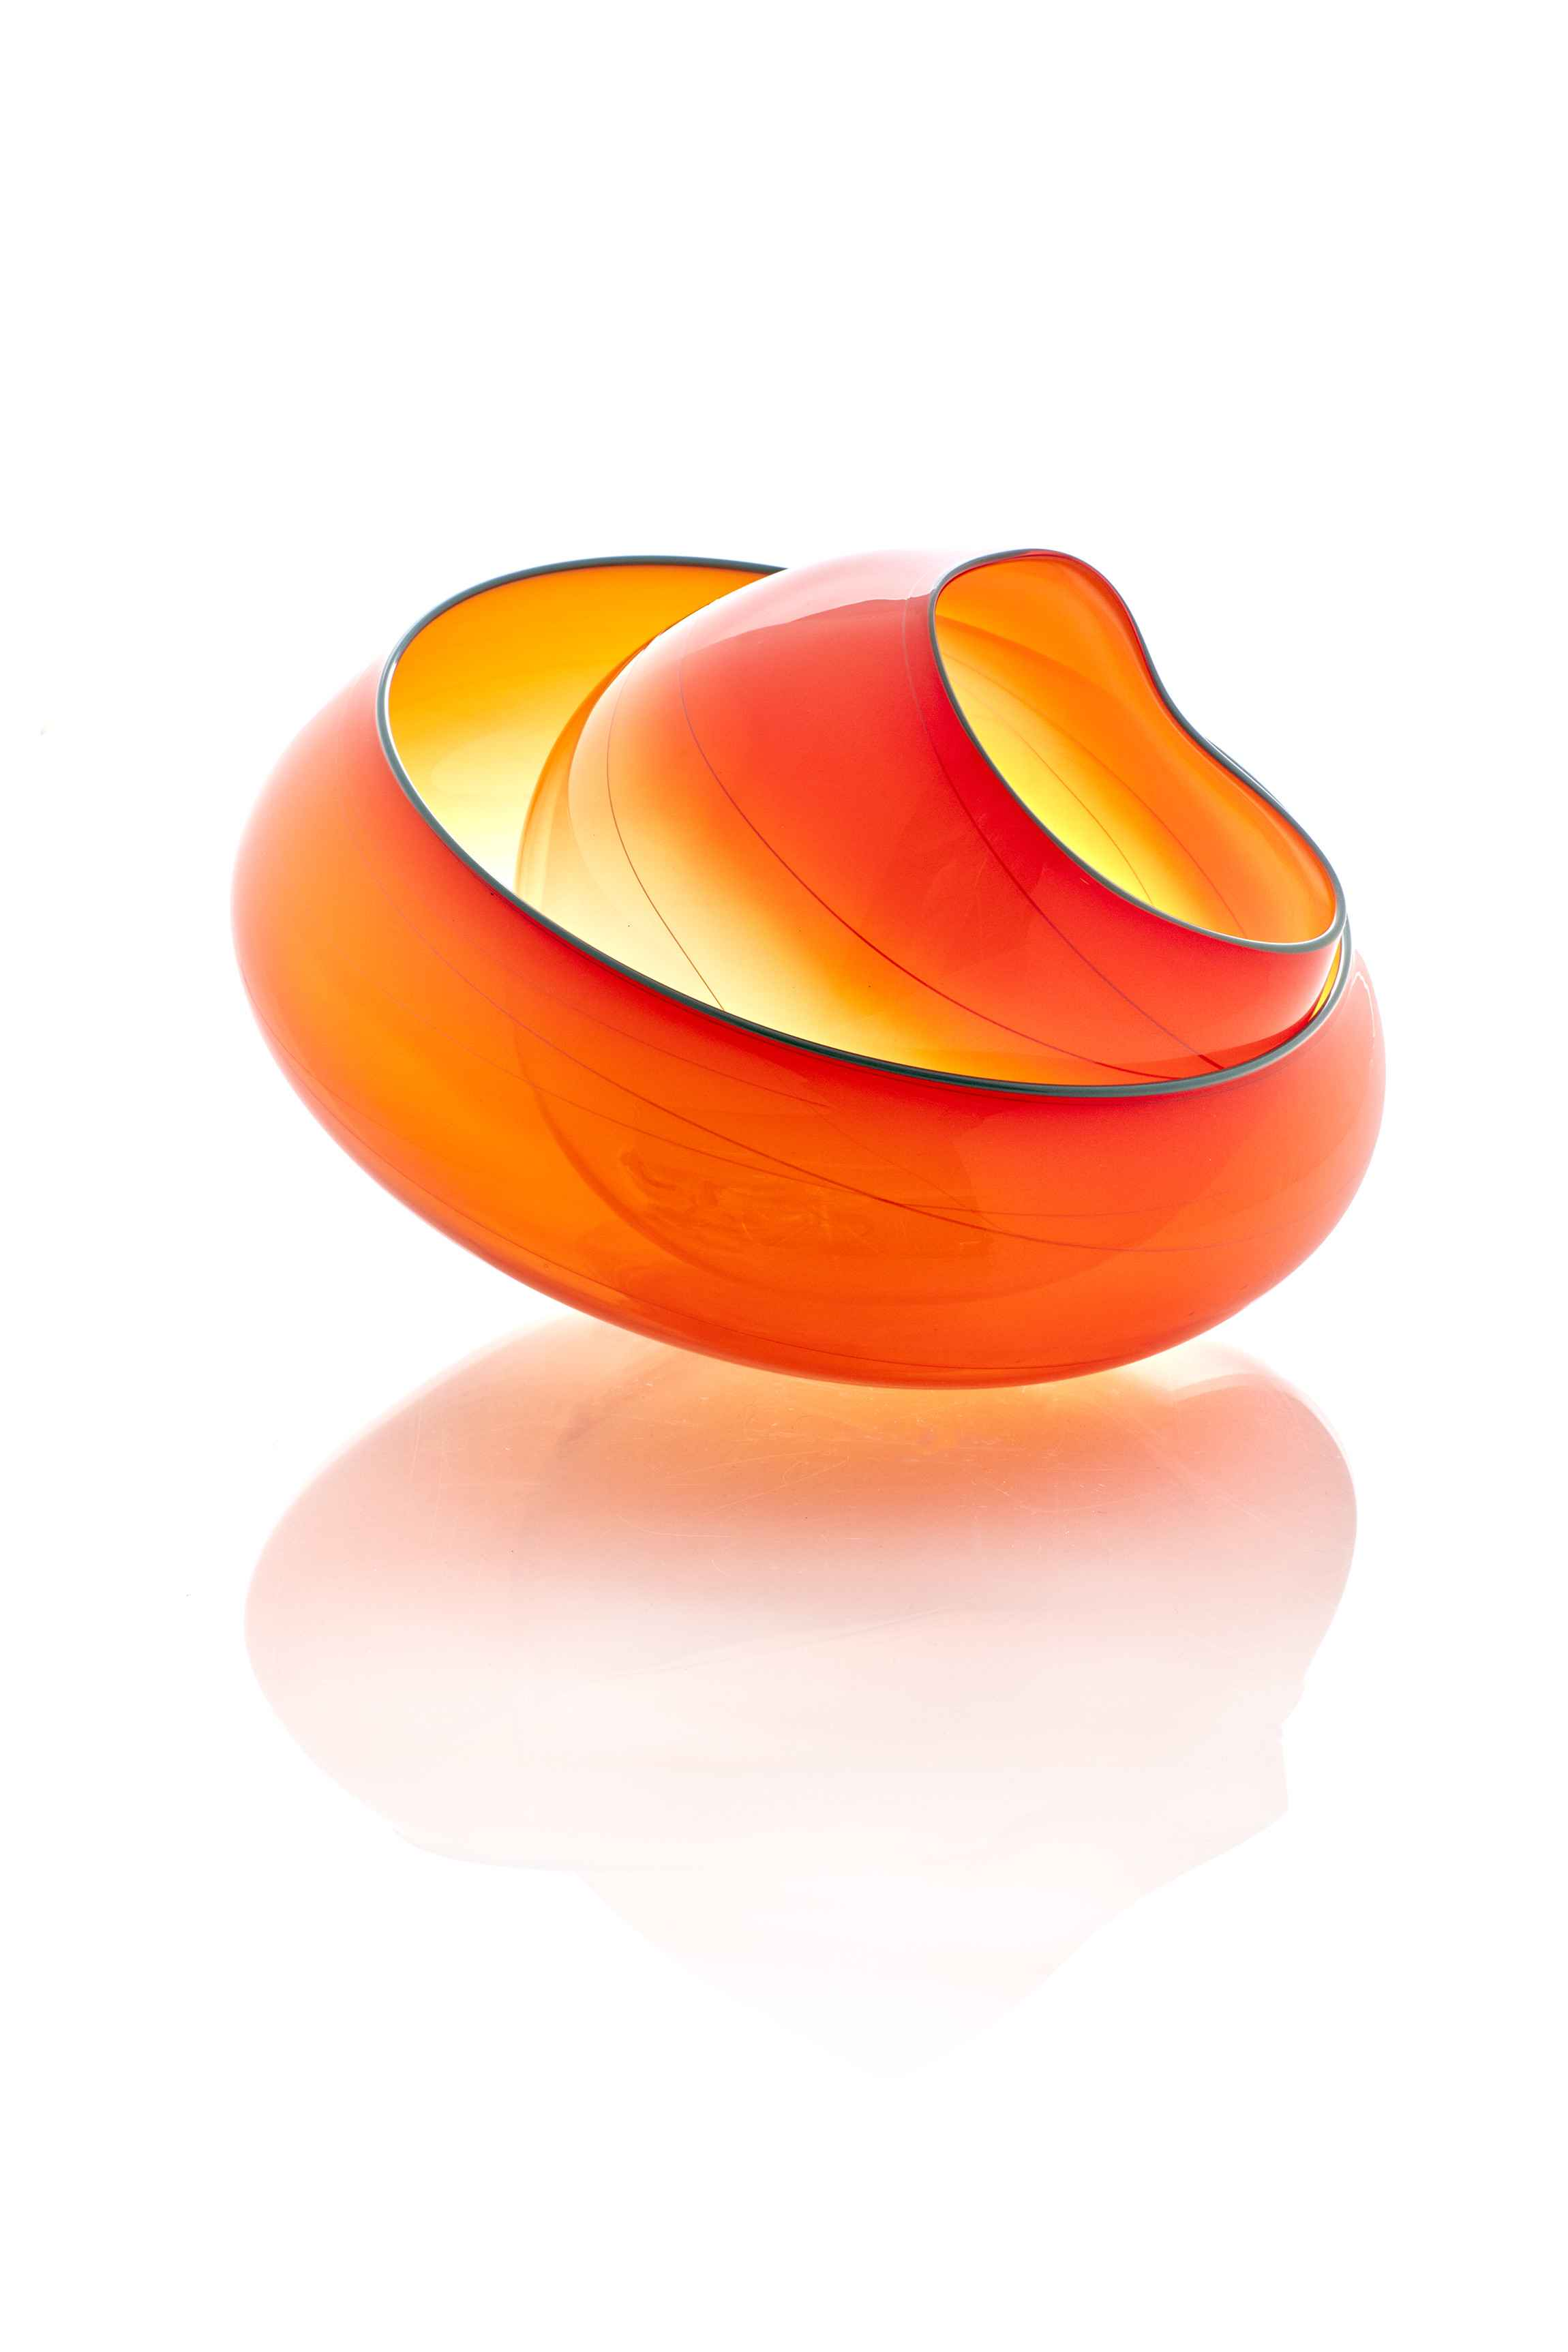 Chihuly- Mandarin Ora...  by  Dale Chihuly